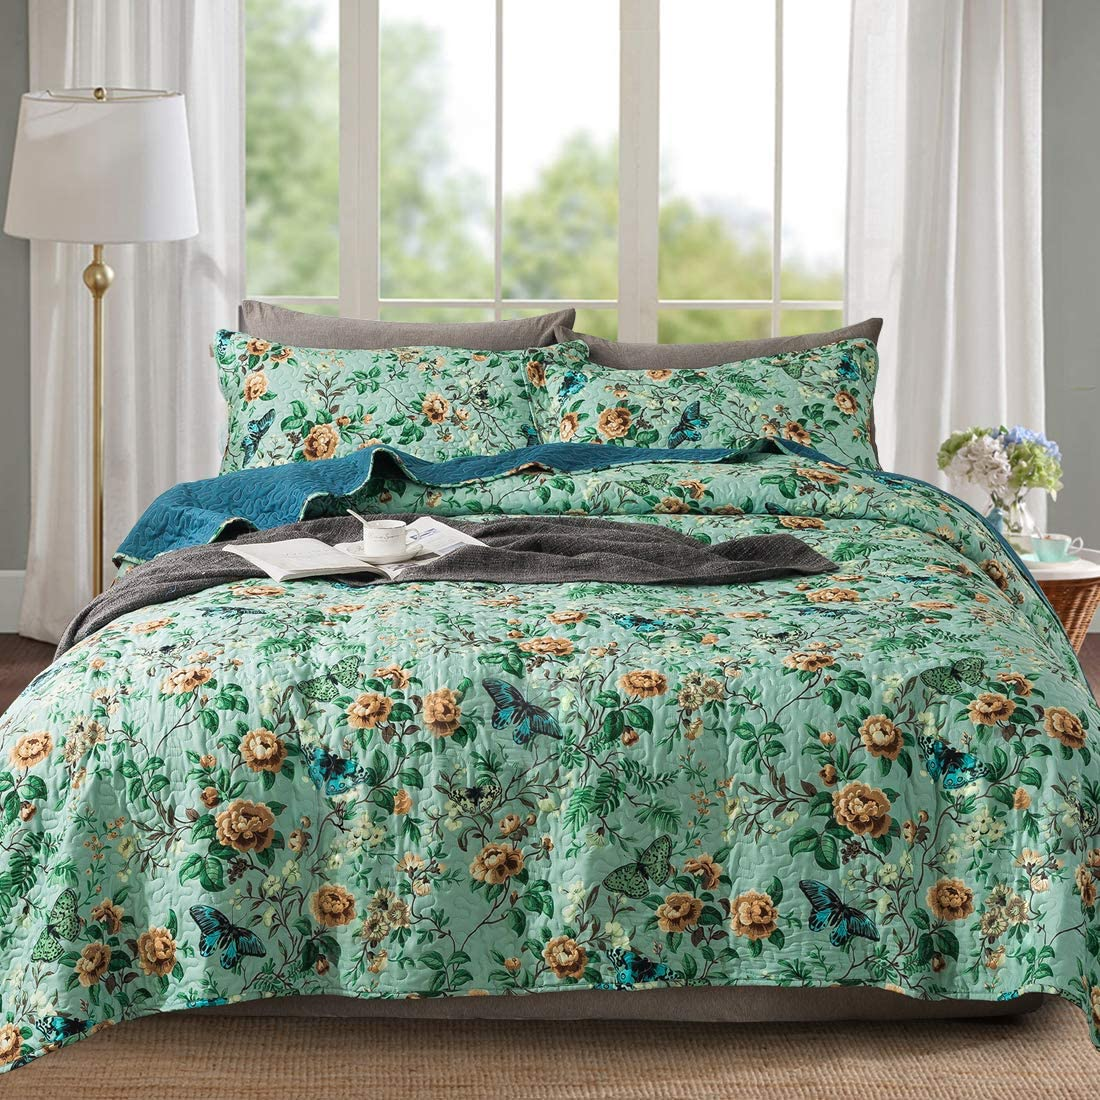 Travan Queen Quilt Set 3-Piece Bedspread Quilted Oversized Lightweight Microfiber Coverlet Set with Shams Floral Pattern Quilted Bedding Set for All Season